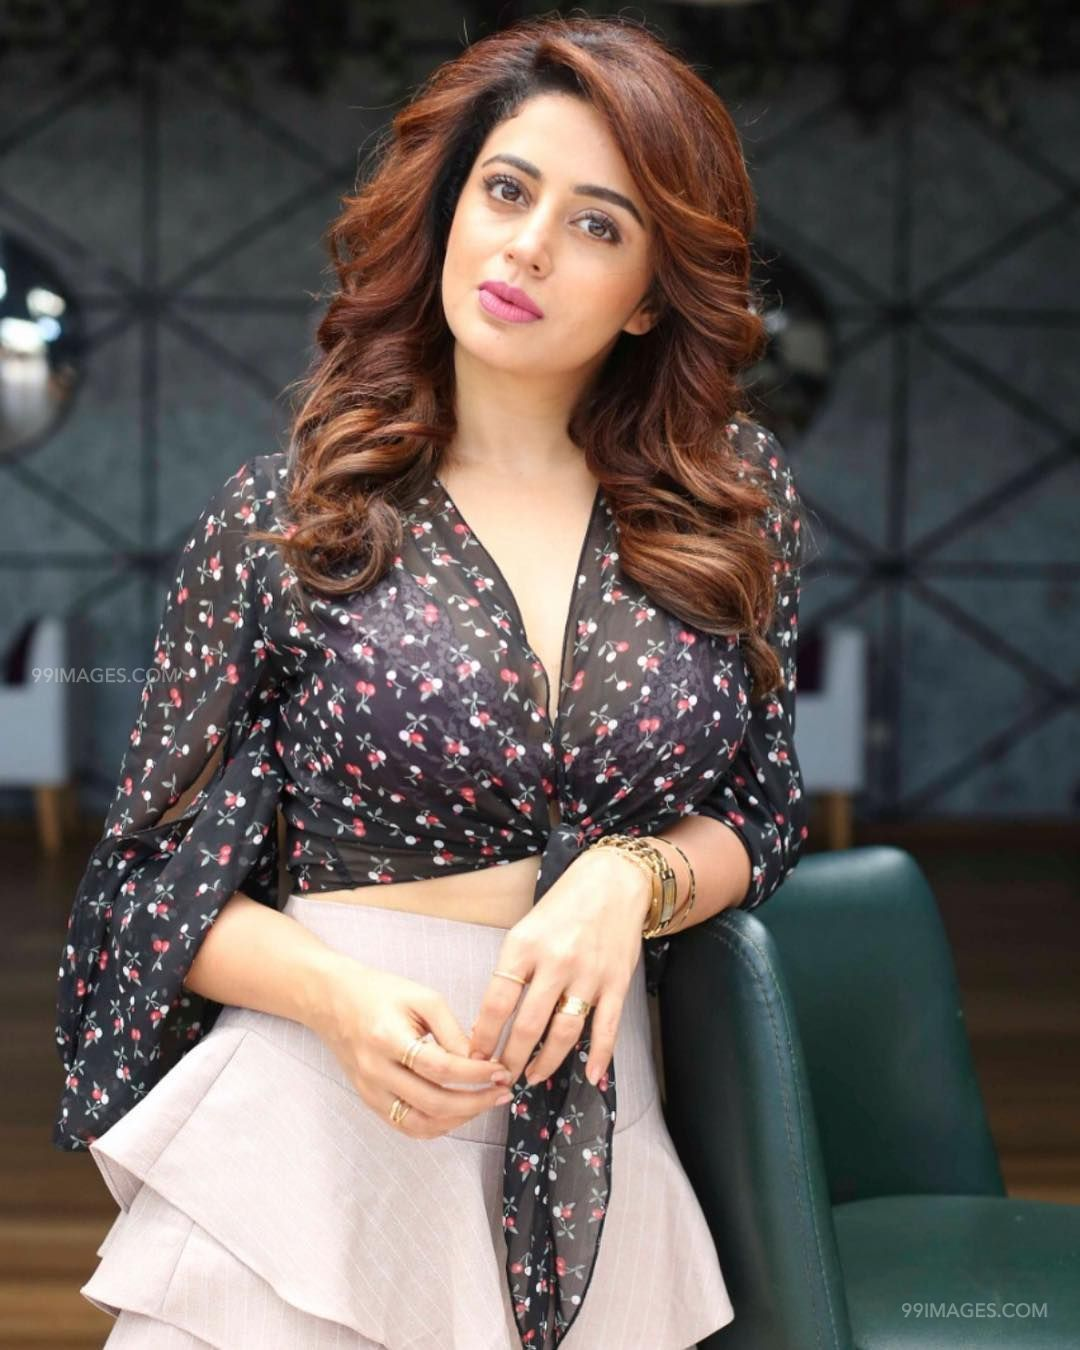 Neha Pendse Beautiful HD Photos & Mobile Wallpapers HD (Android/iPhone) (1080p) (40050) - Neha Pendse